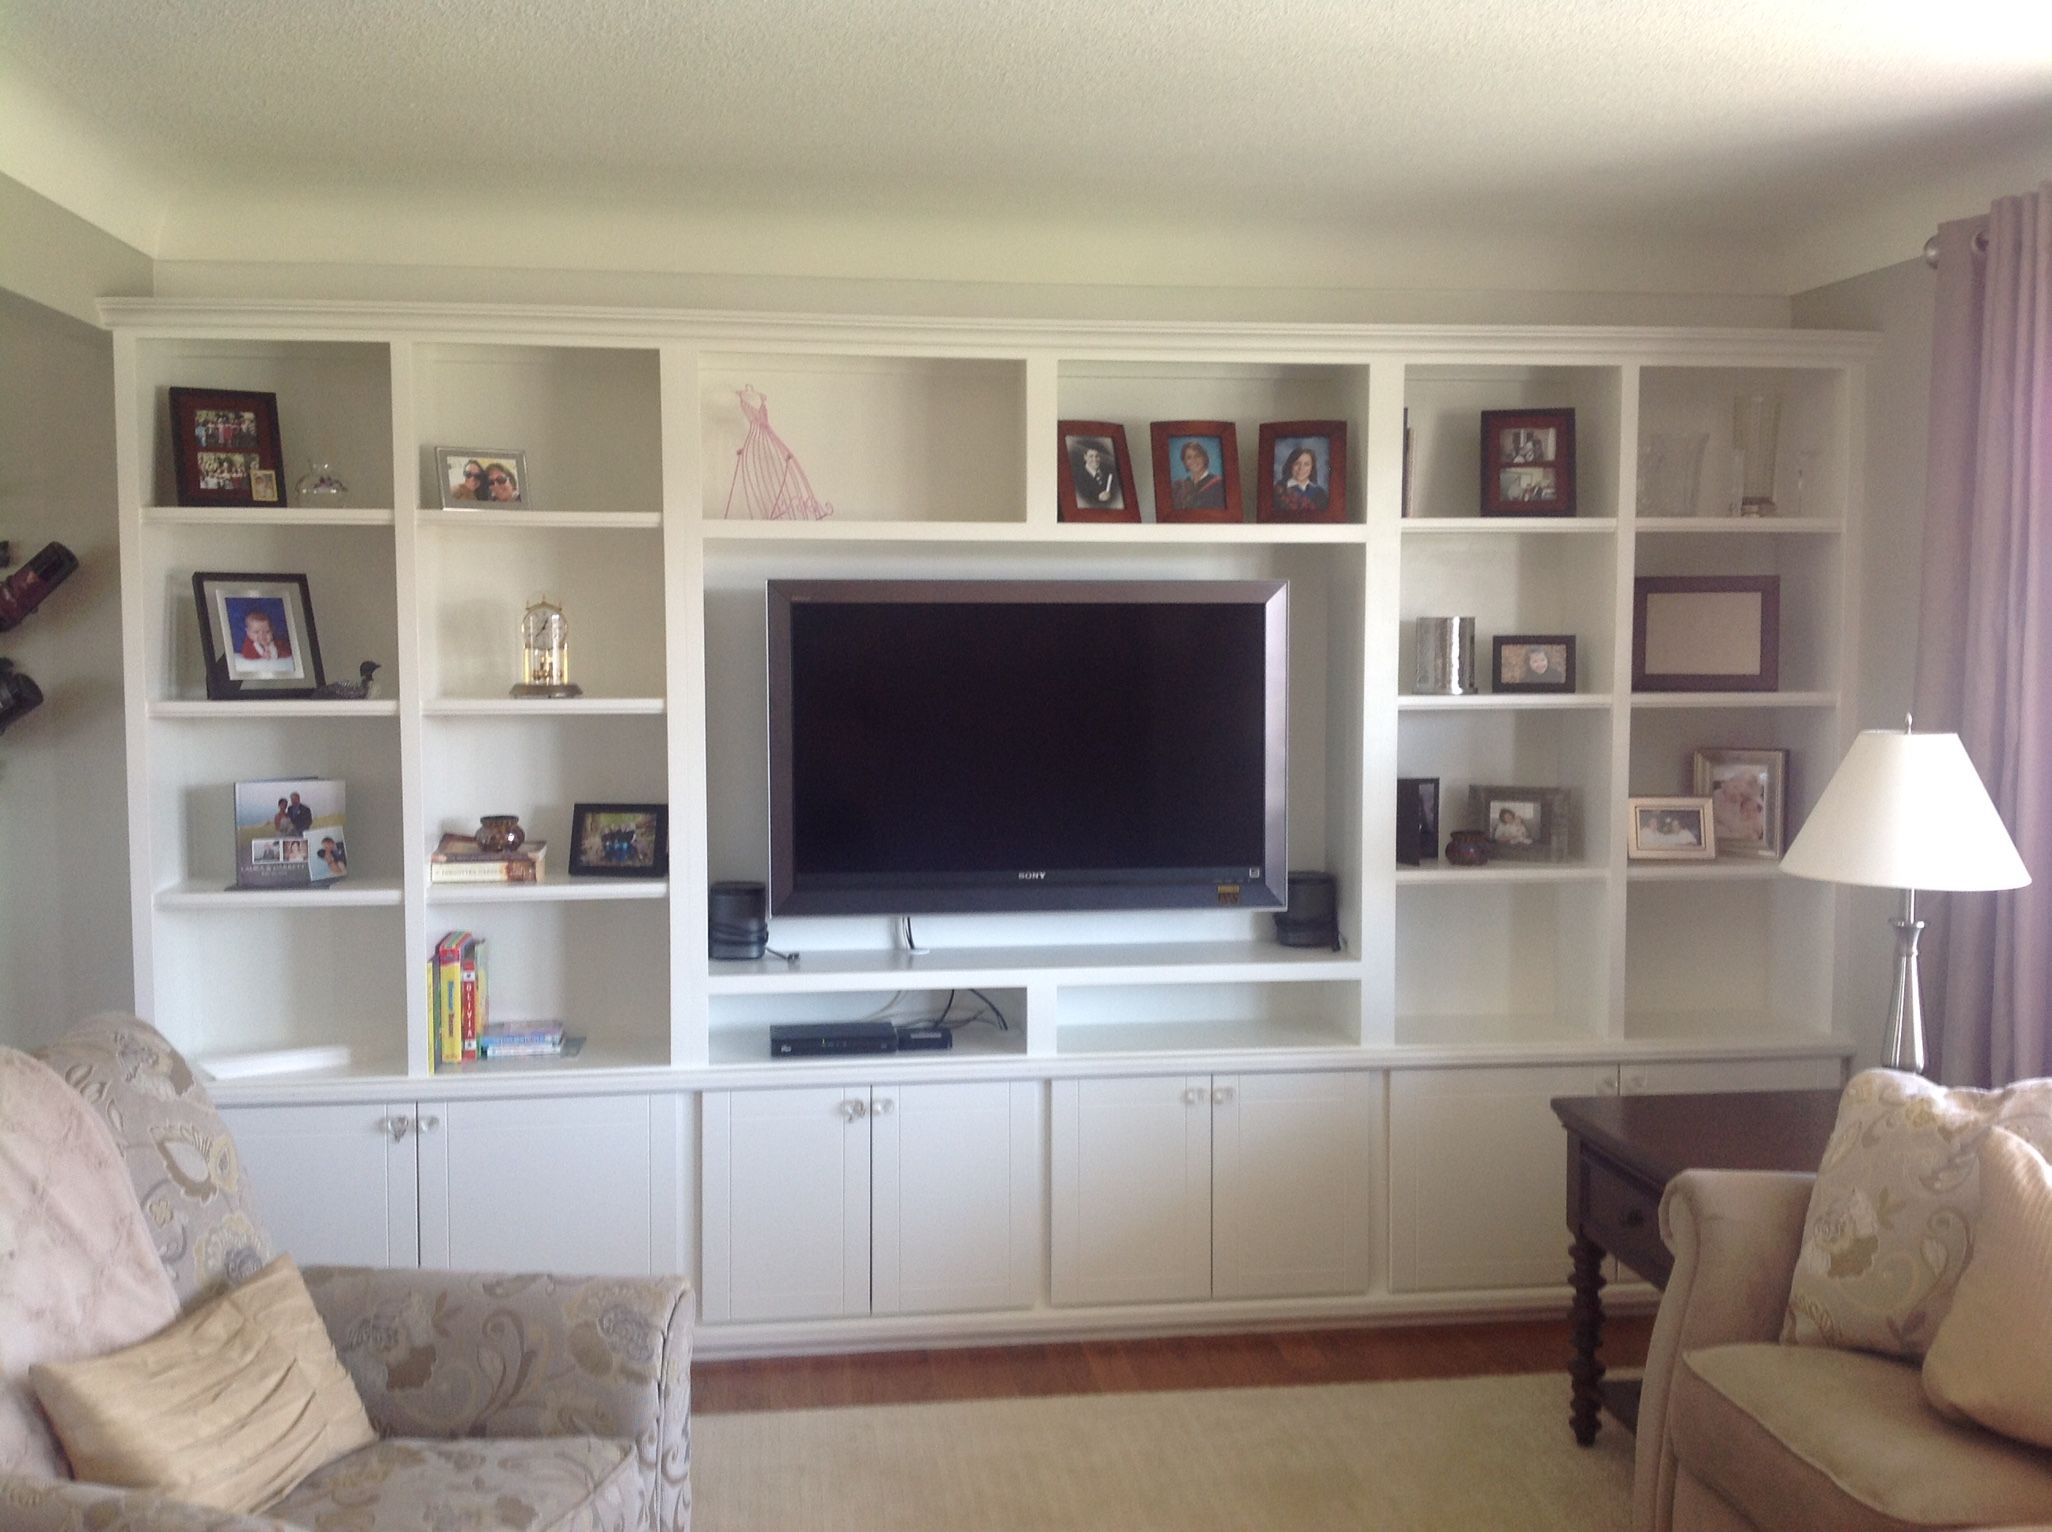 in with for trends cabinets shelves prefab ideas center bookshelf to room using cabinet apply bottom ikea entertainment pillows best living easy built ins colorful cost